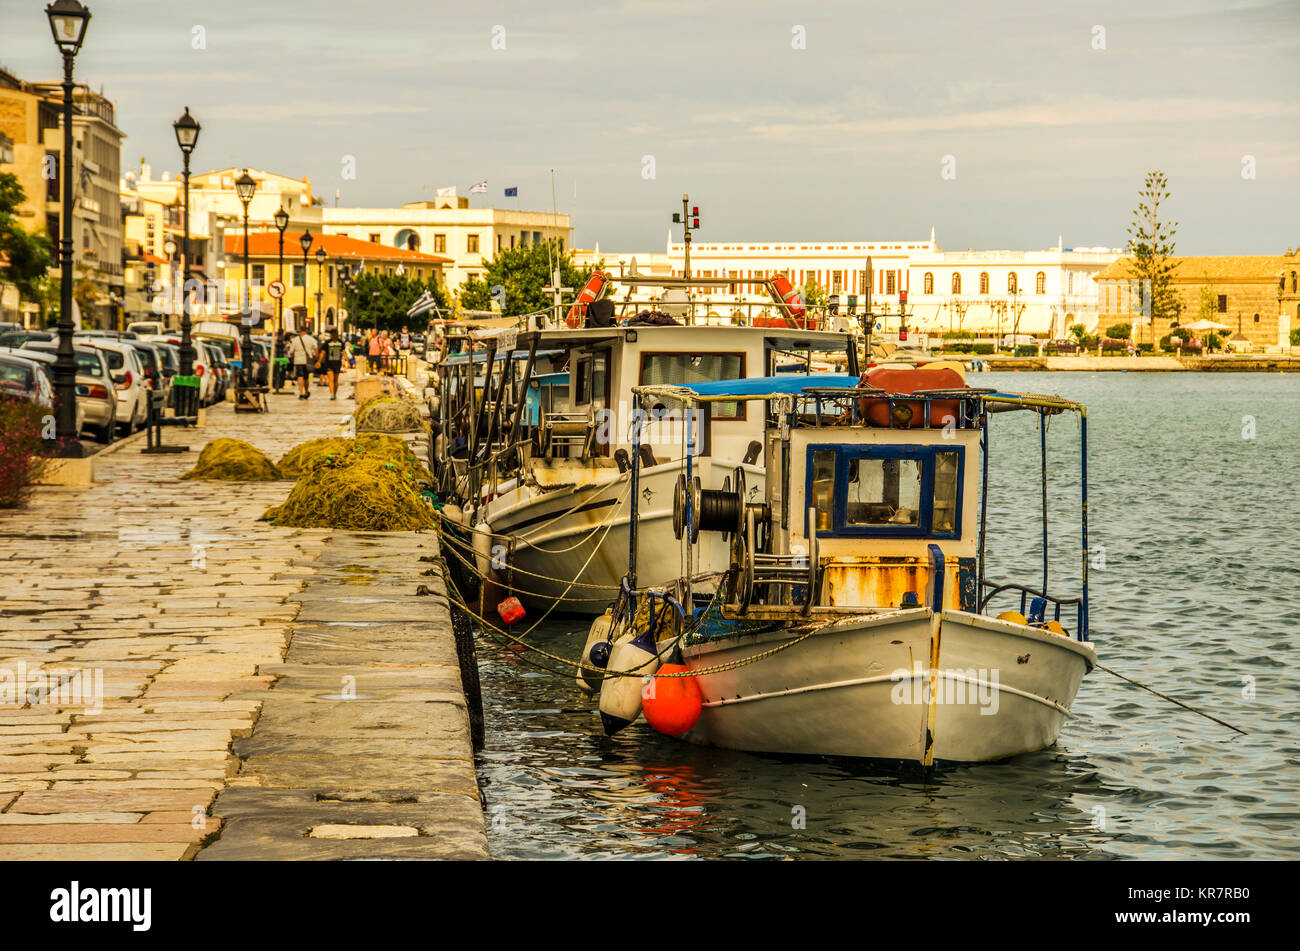 Zakintos stock photos zakintos stock images alamy for City island fishing boats